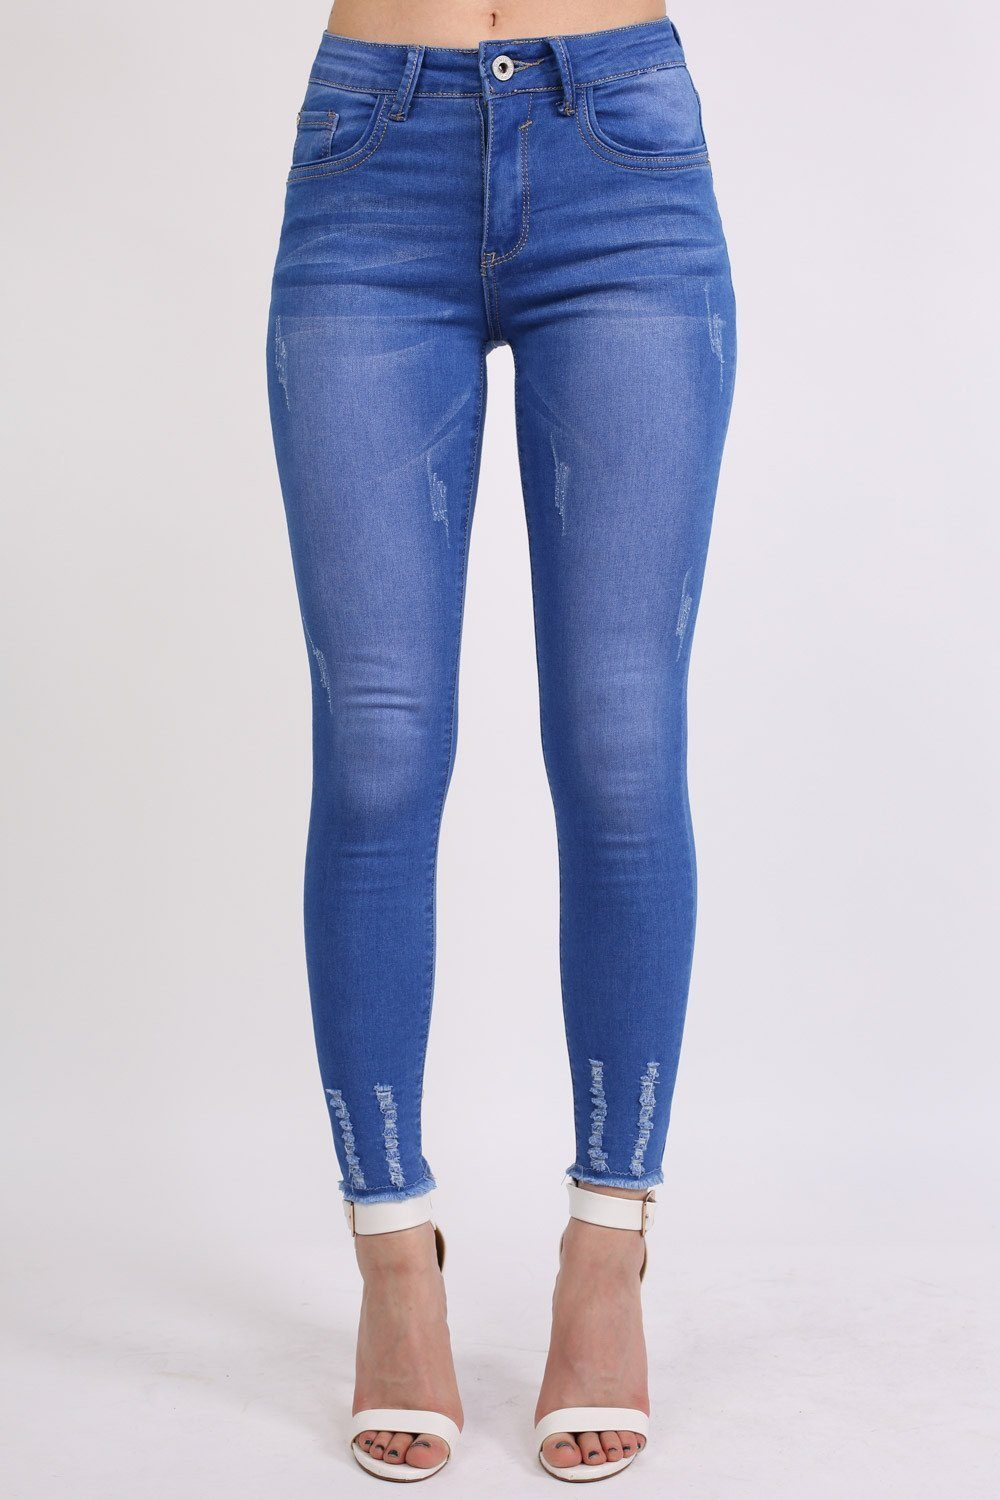 Frayed Hem Distressed Skinny Jeans in Denim 0